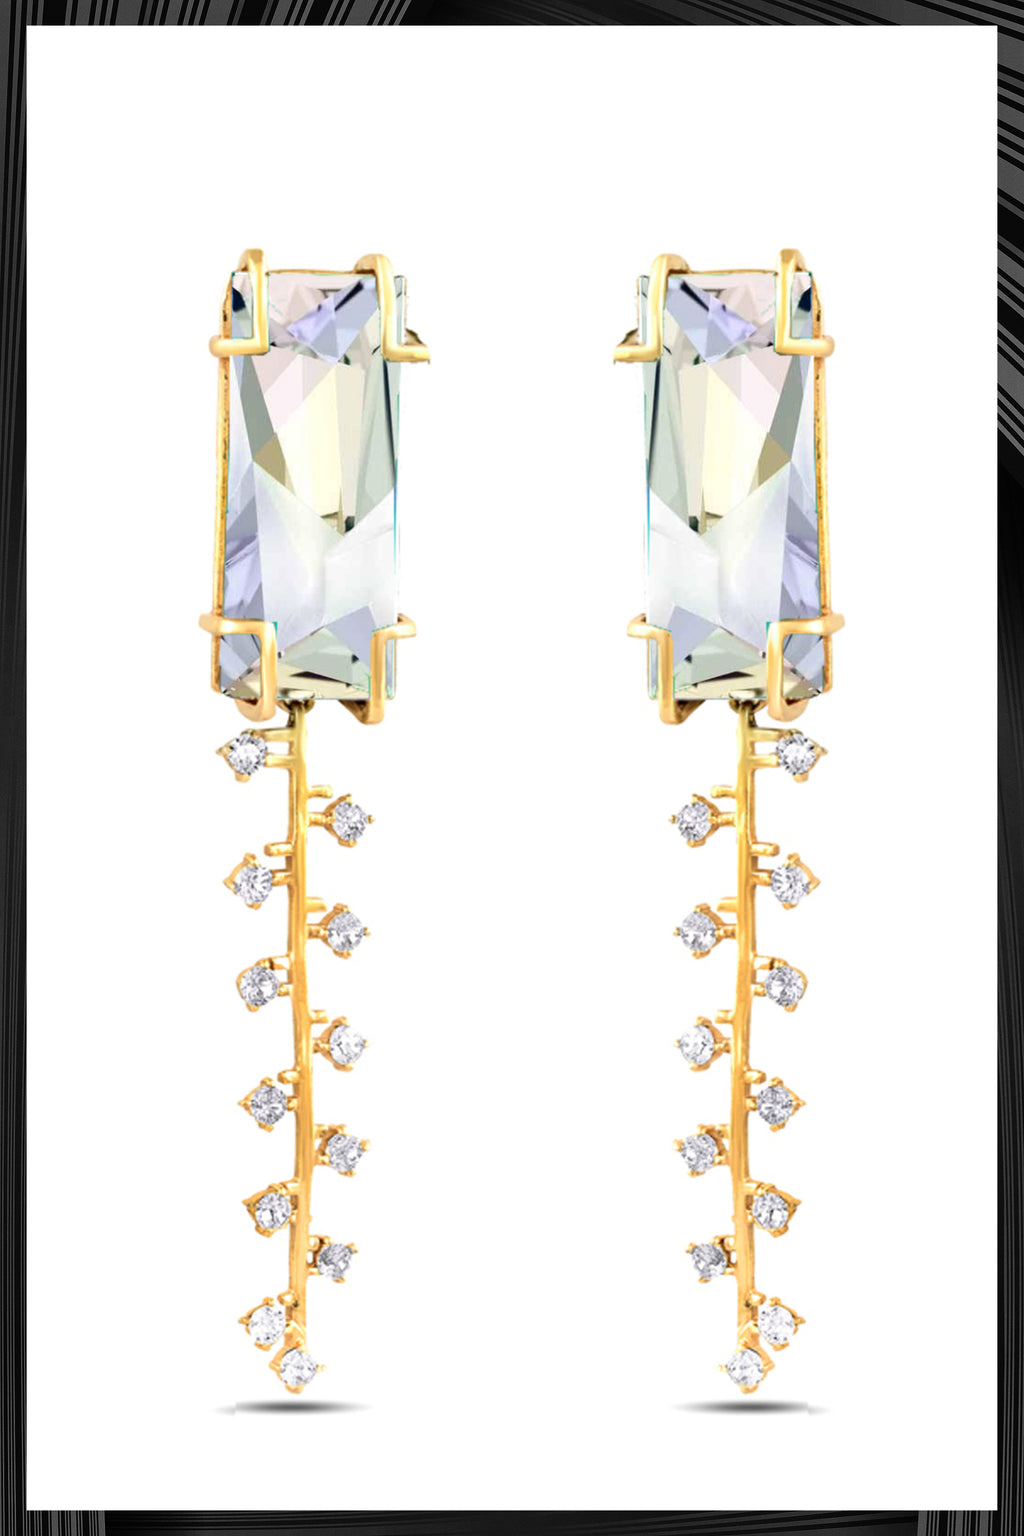 Cristal Fulgar Zip Earrings | Free Delivery - Quick Shipping